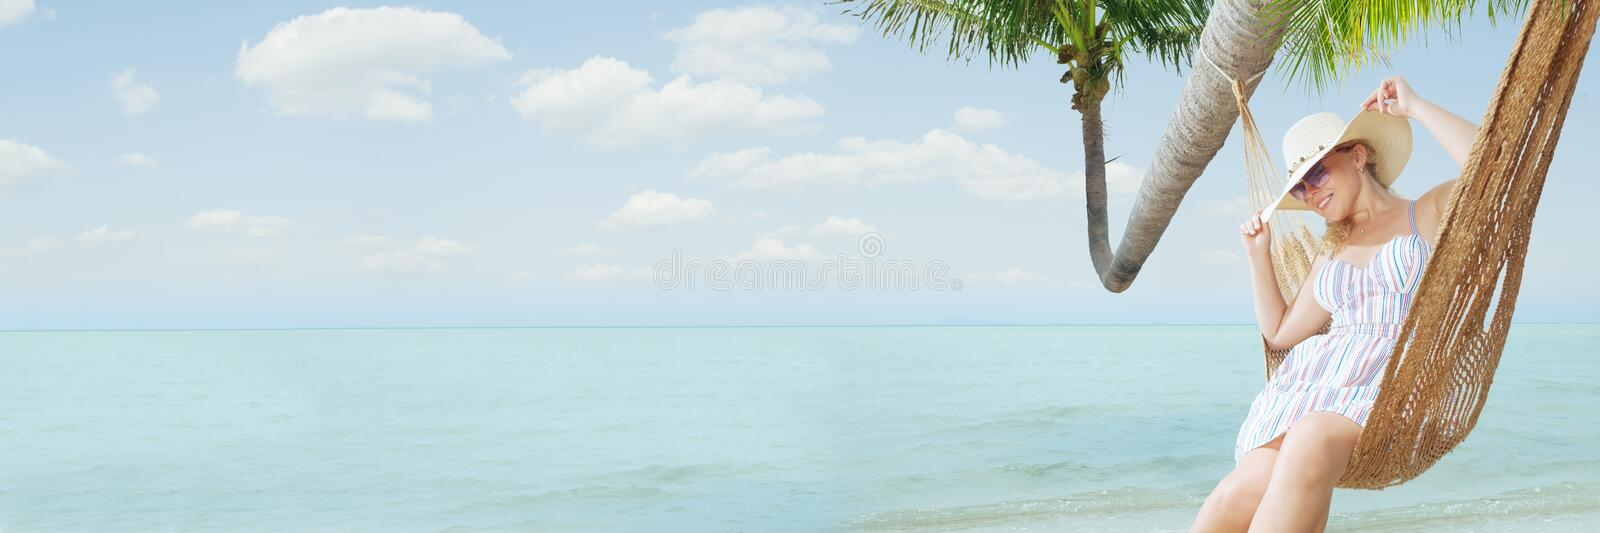 young lady swinging  in hummock on tropical beach stock photography